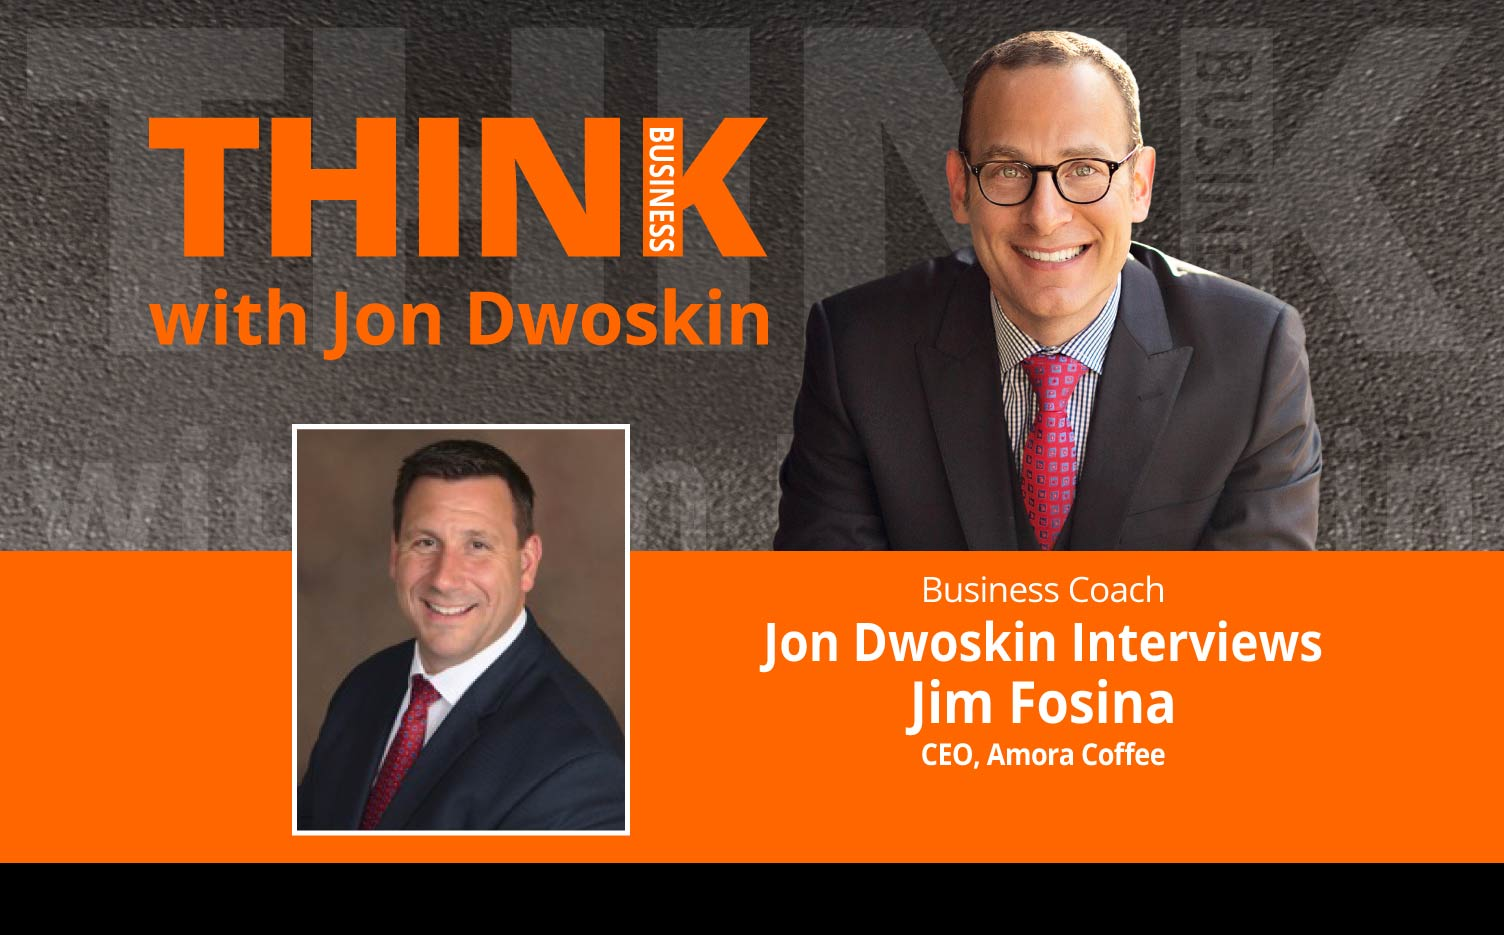 THINK Business Podcast: Jon Dwoskin Interviews Jim Fosina, CEO, Amora Coffee